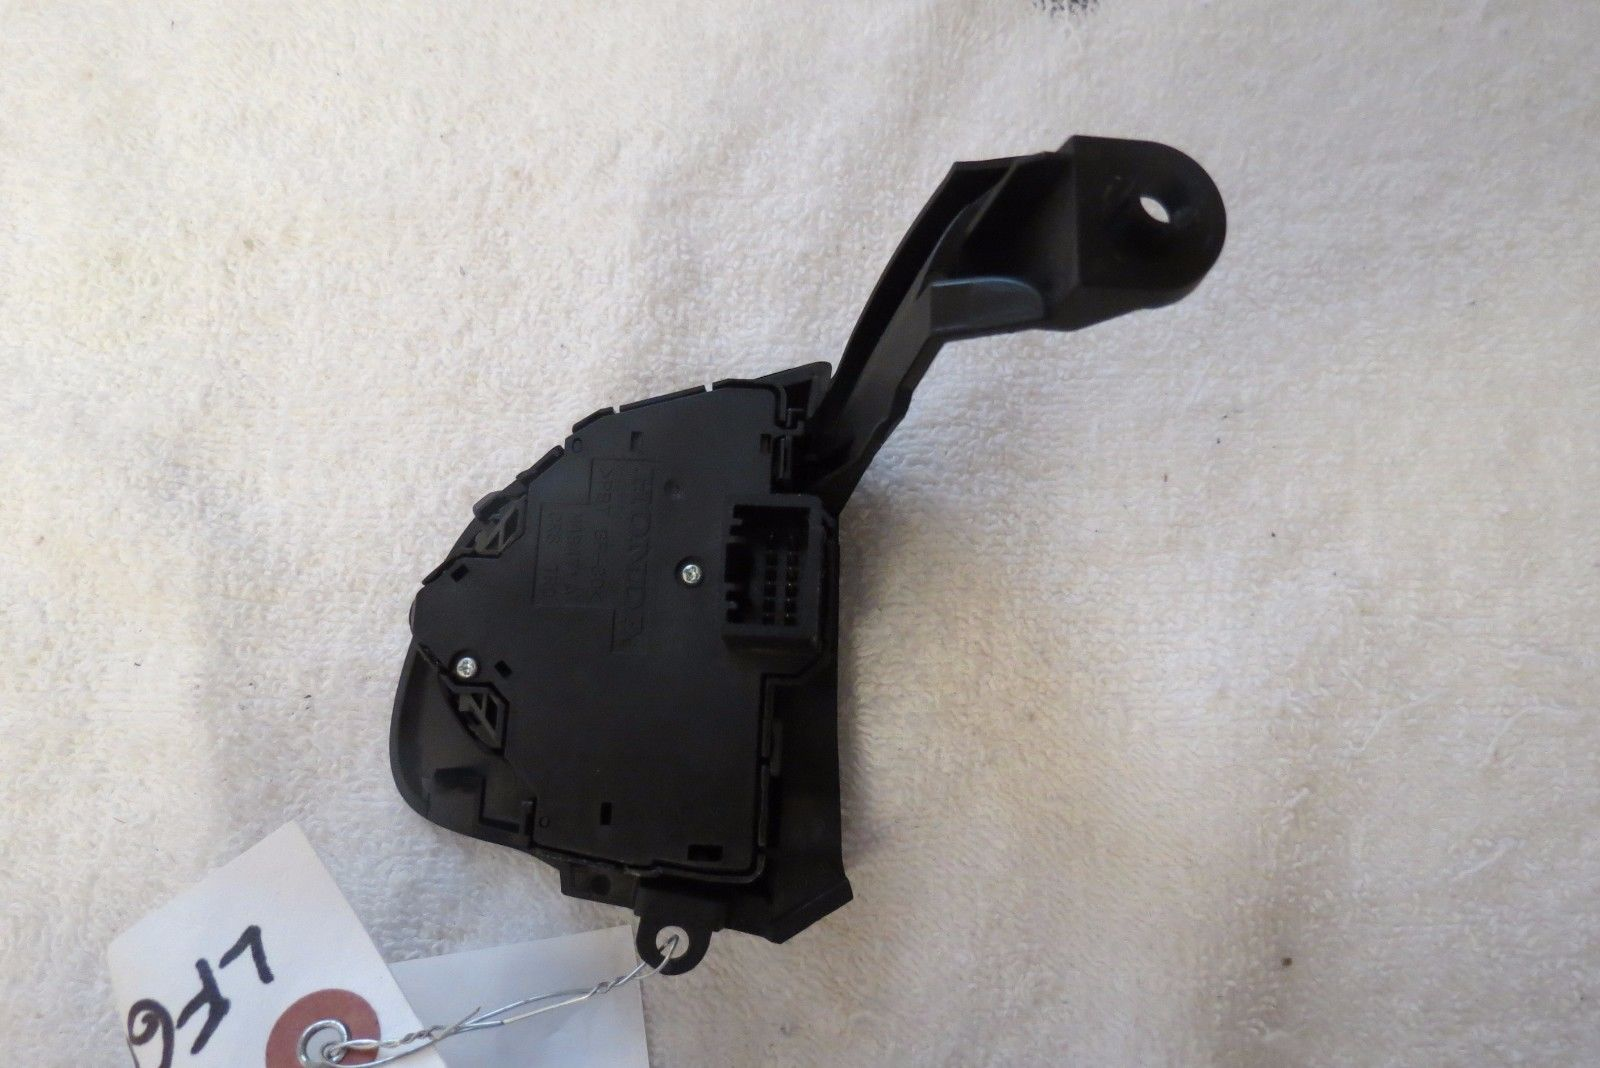 12 13 14 15 16 2013 Honda CR-V Steering Wheel Cruise Control Switch OEM 1382W